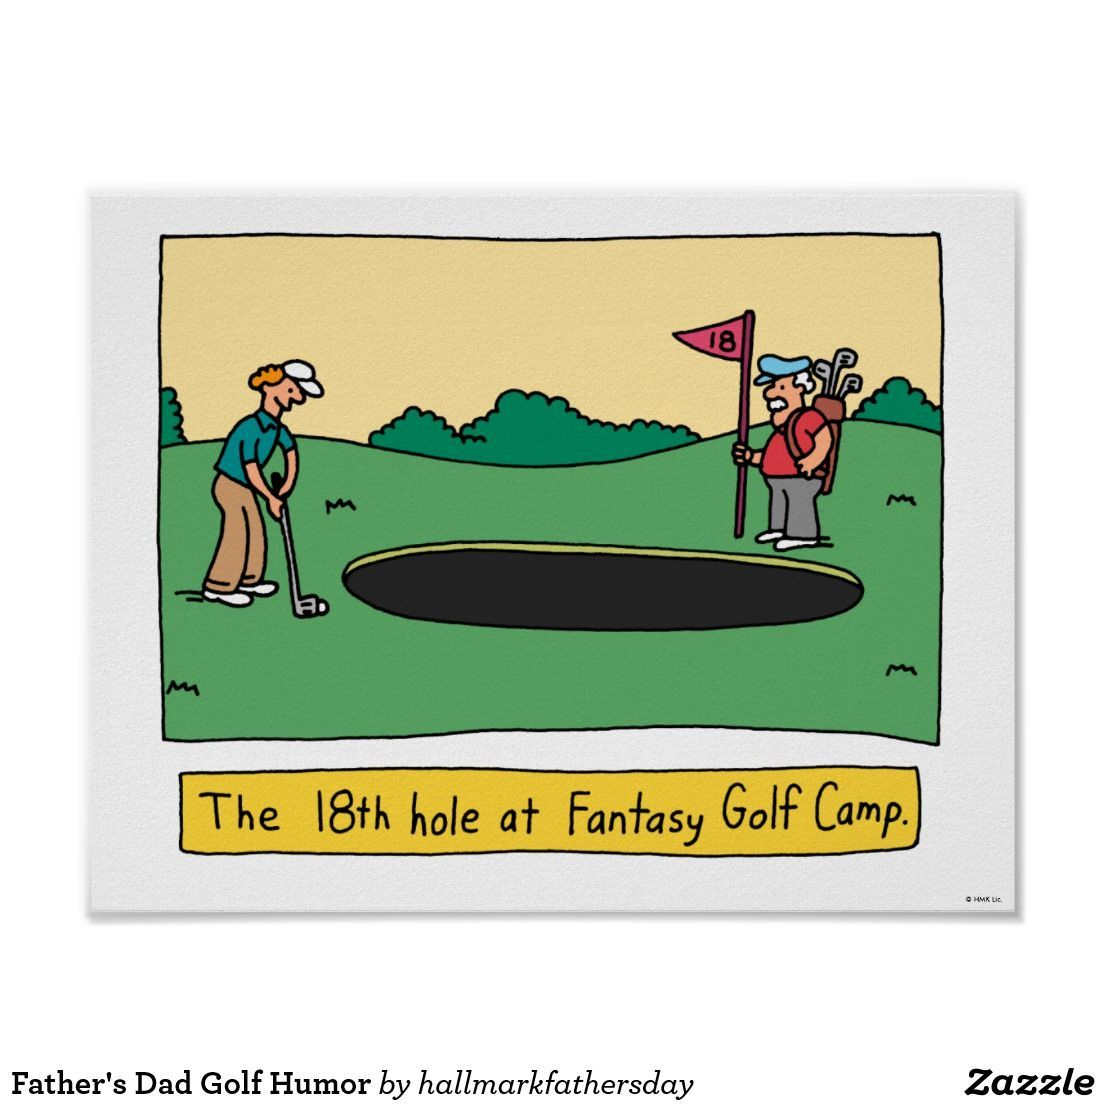 Father's Dad Golf Humor Poster | Zazzle.com #golfhumor Father's Dad Golf Humor Poster #golfhumor